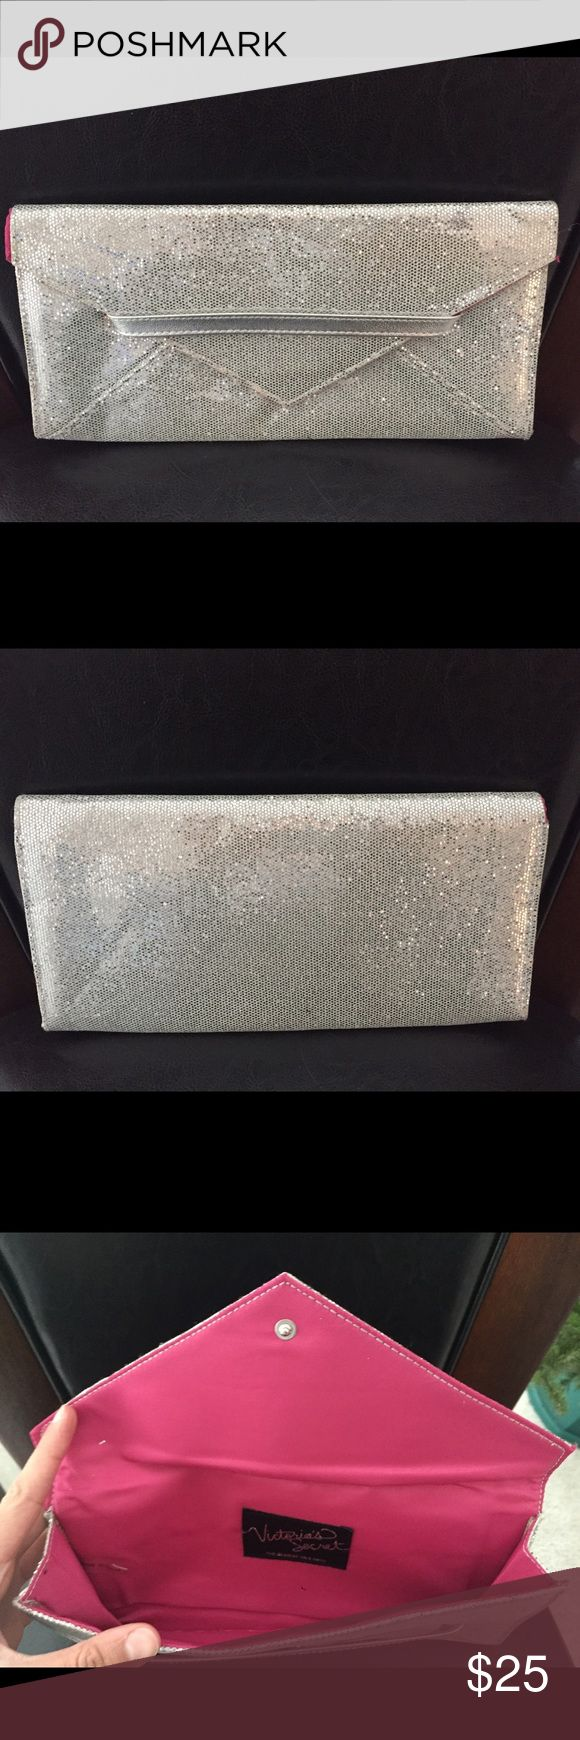 New Victoria's Secret Glitter Clutch Bag NEW Thin and light Victoria's Secret Silver Glitter Clutch Purse. Perfect for a night out, when you don't want to carry a lot of stuff. Victoria's Secret Bags Clutches & Wristlets